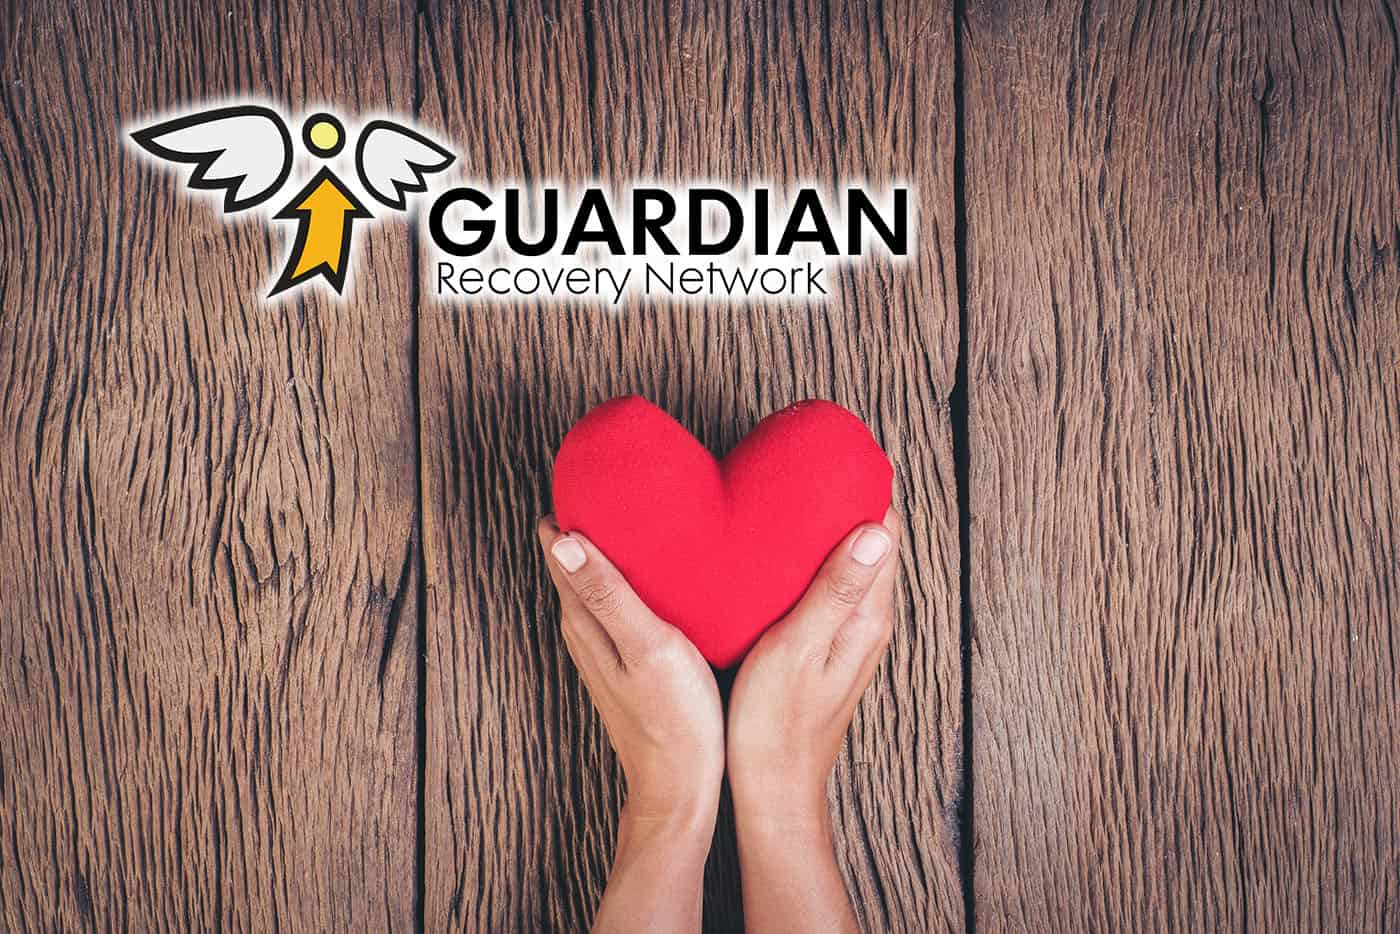 Guardian Recovery Network Self Love Quit Opiates